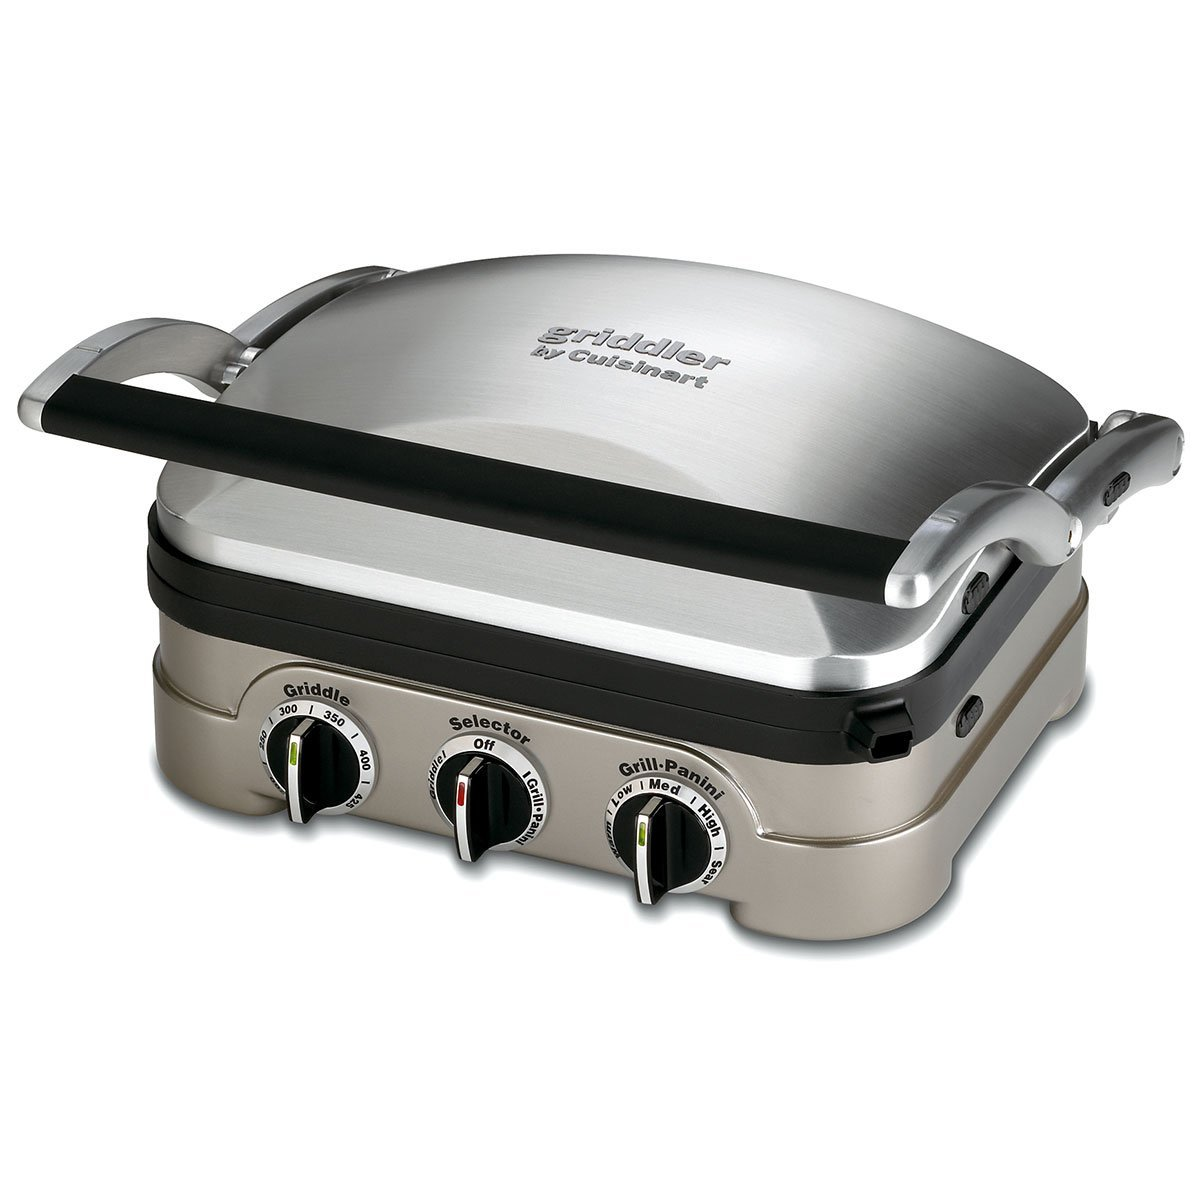 Cuisinart Gourmet GR-4N 5-in-1 Griddle Griddler Panini Sandwich Press